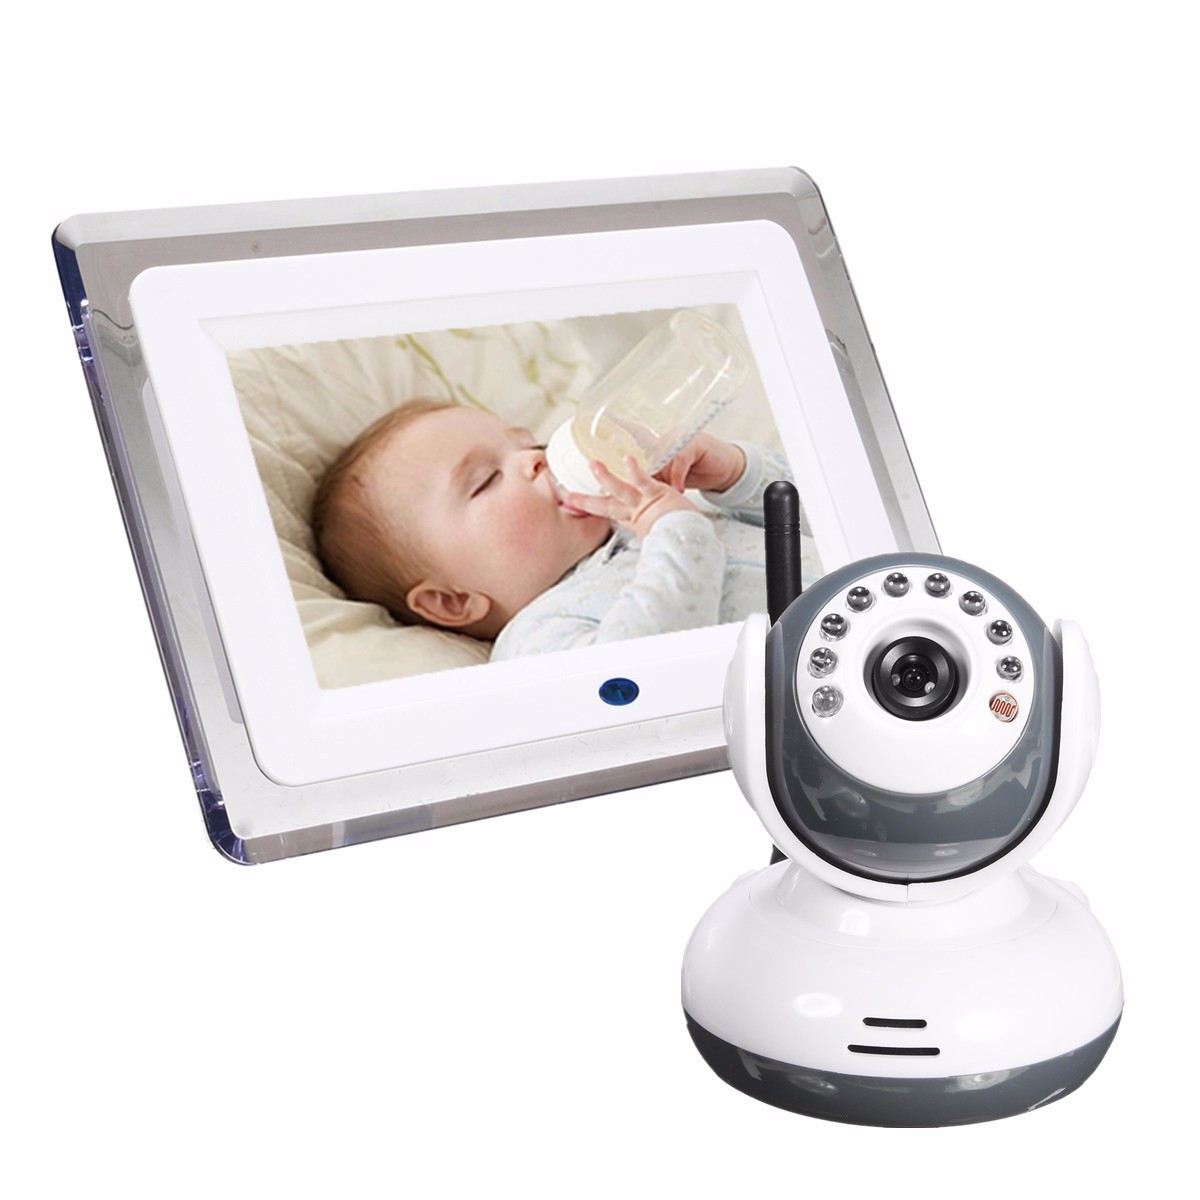 NEW 2.4G Wireless Digital 7 LCD Baby Monitor Camera Audio Talk Video Night Vision Security Camera aputure digital 7inch lcd field video monitor v screen vs 1 finehd field monitor accepts hdmi av for dslr